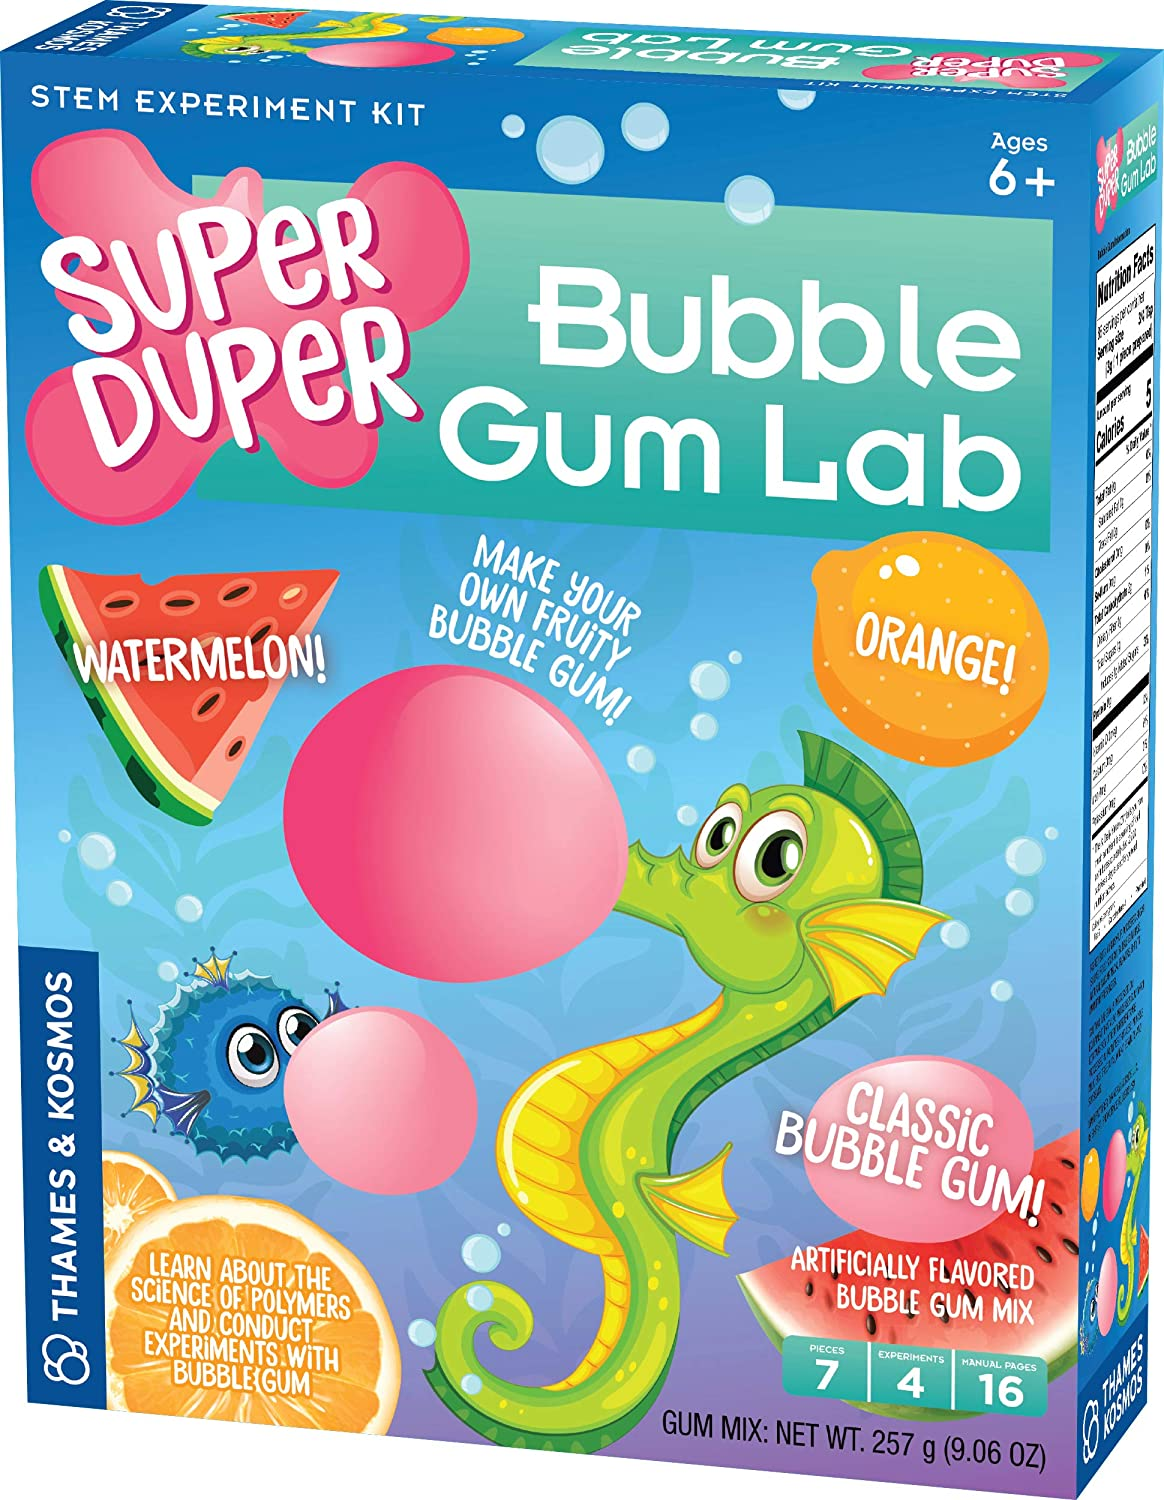 Thames & Kosmos Super Duper Bubble Gum Lab STEM Experiment & Activity Kit | Make Your Own Yummy Bubble Gum in 3 Flavors! | Learn About Science of Elastic Materials | Food Ingredients Included